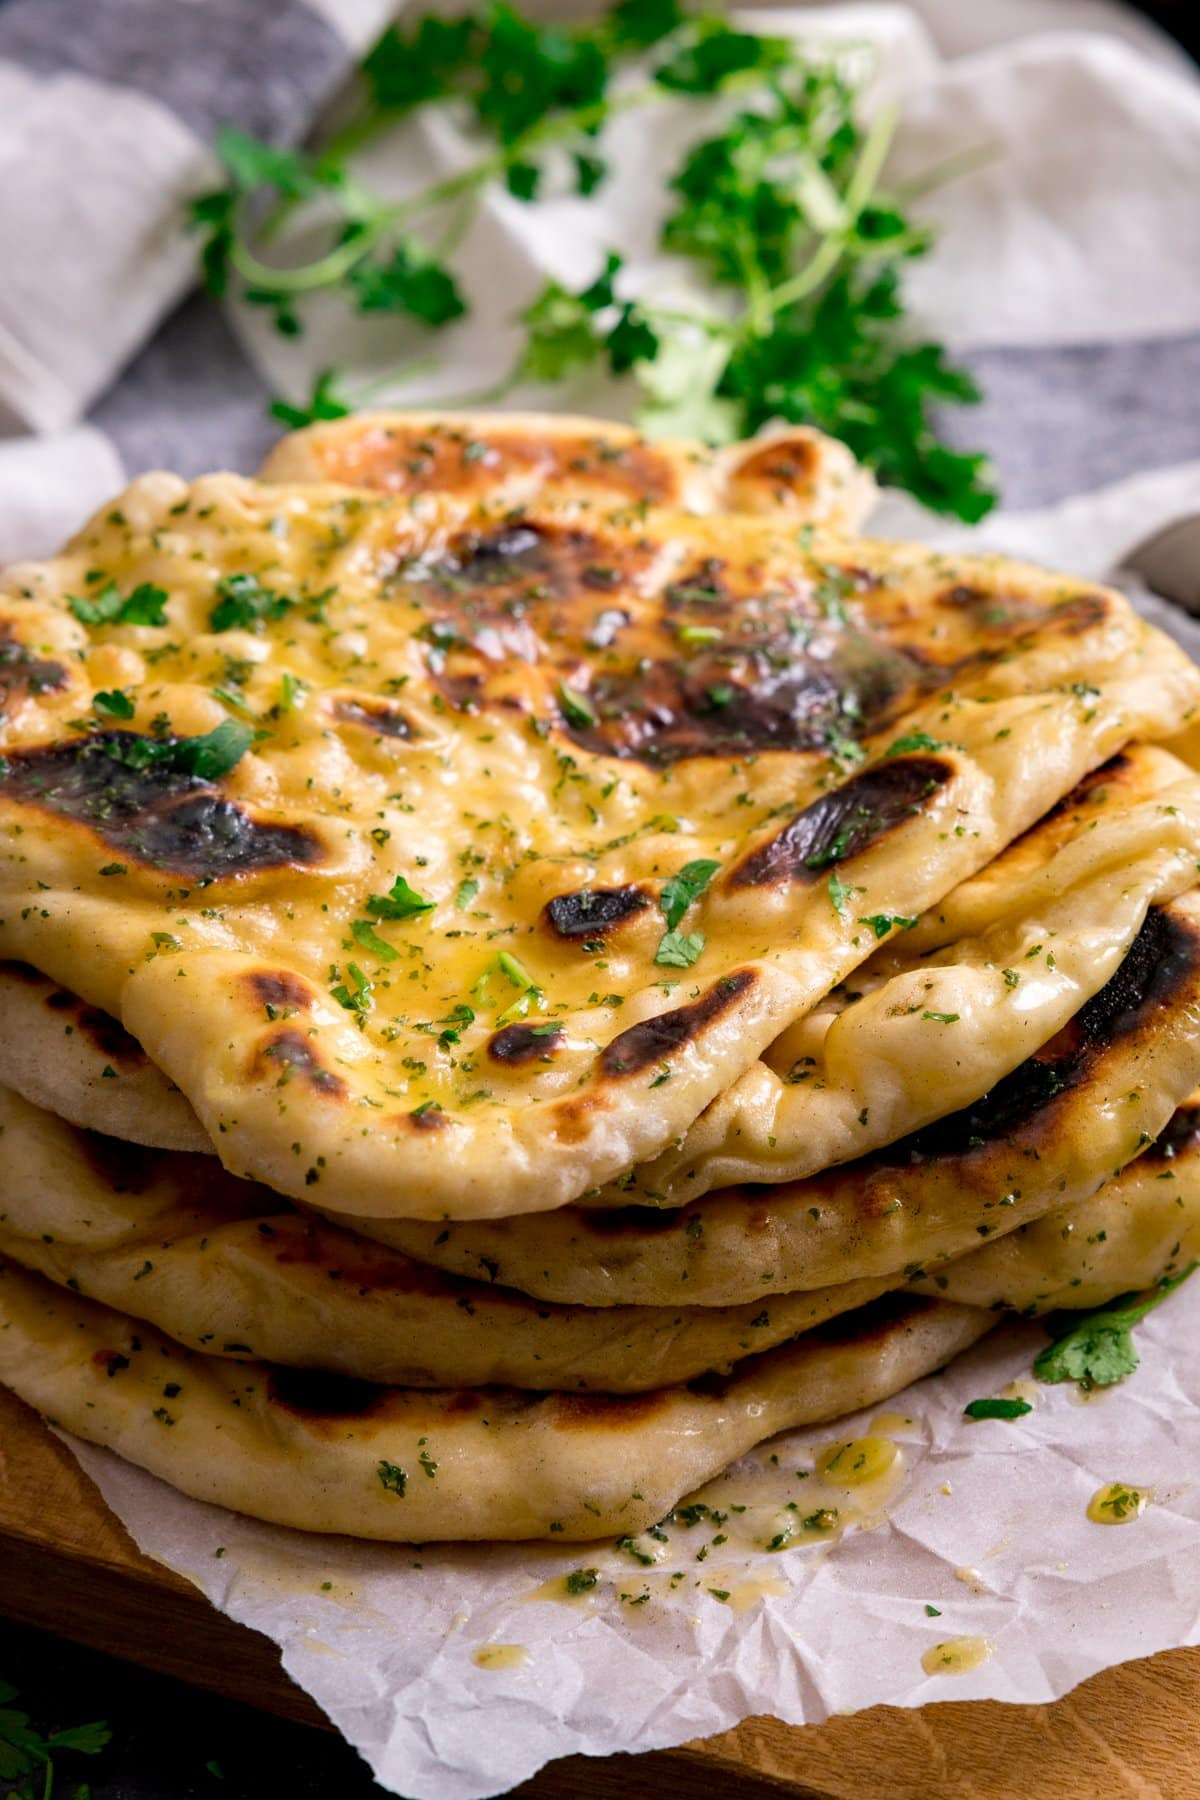 Pile of garlic naan breads on a light background. Fresh herbs in the background.